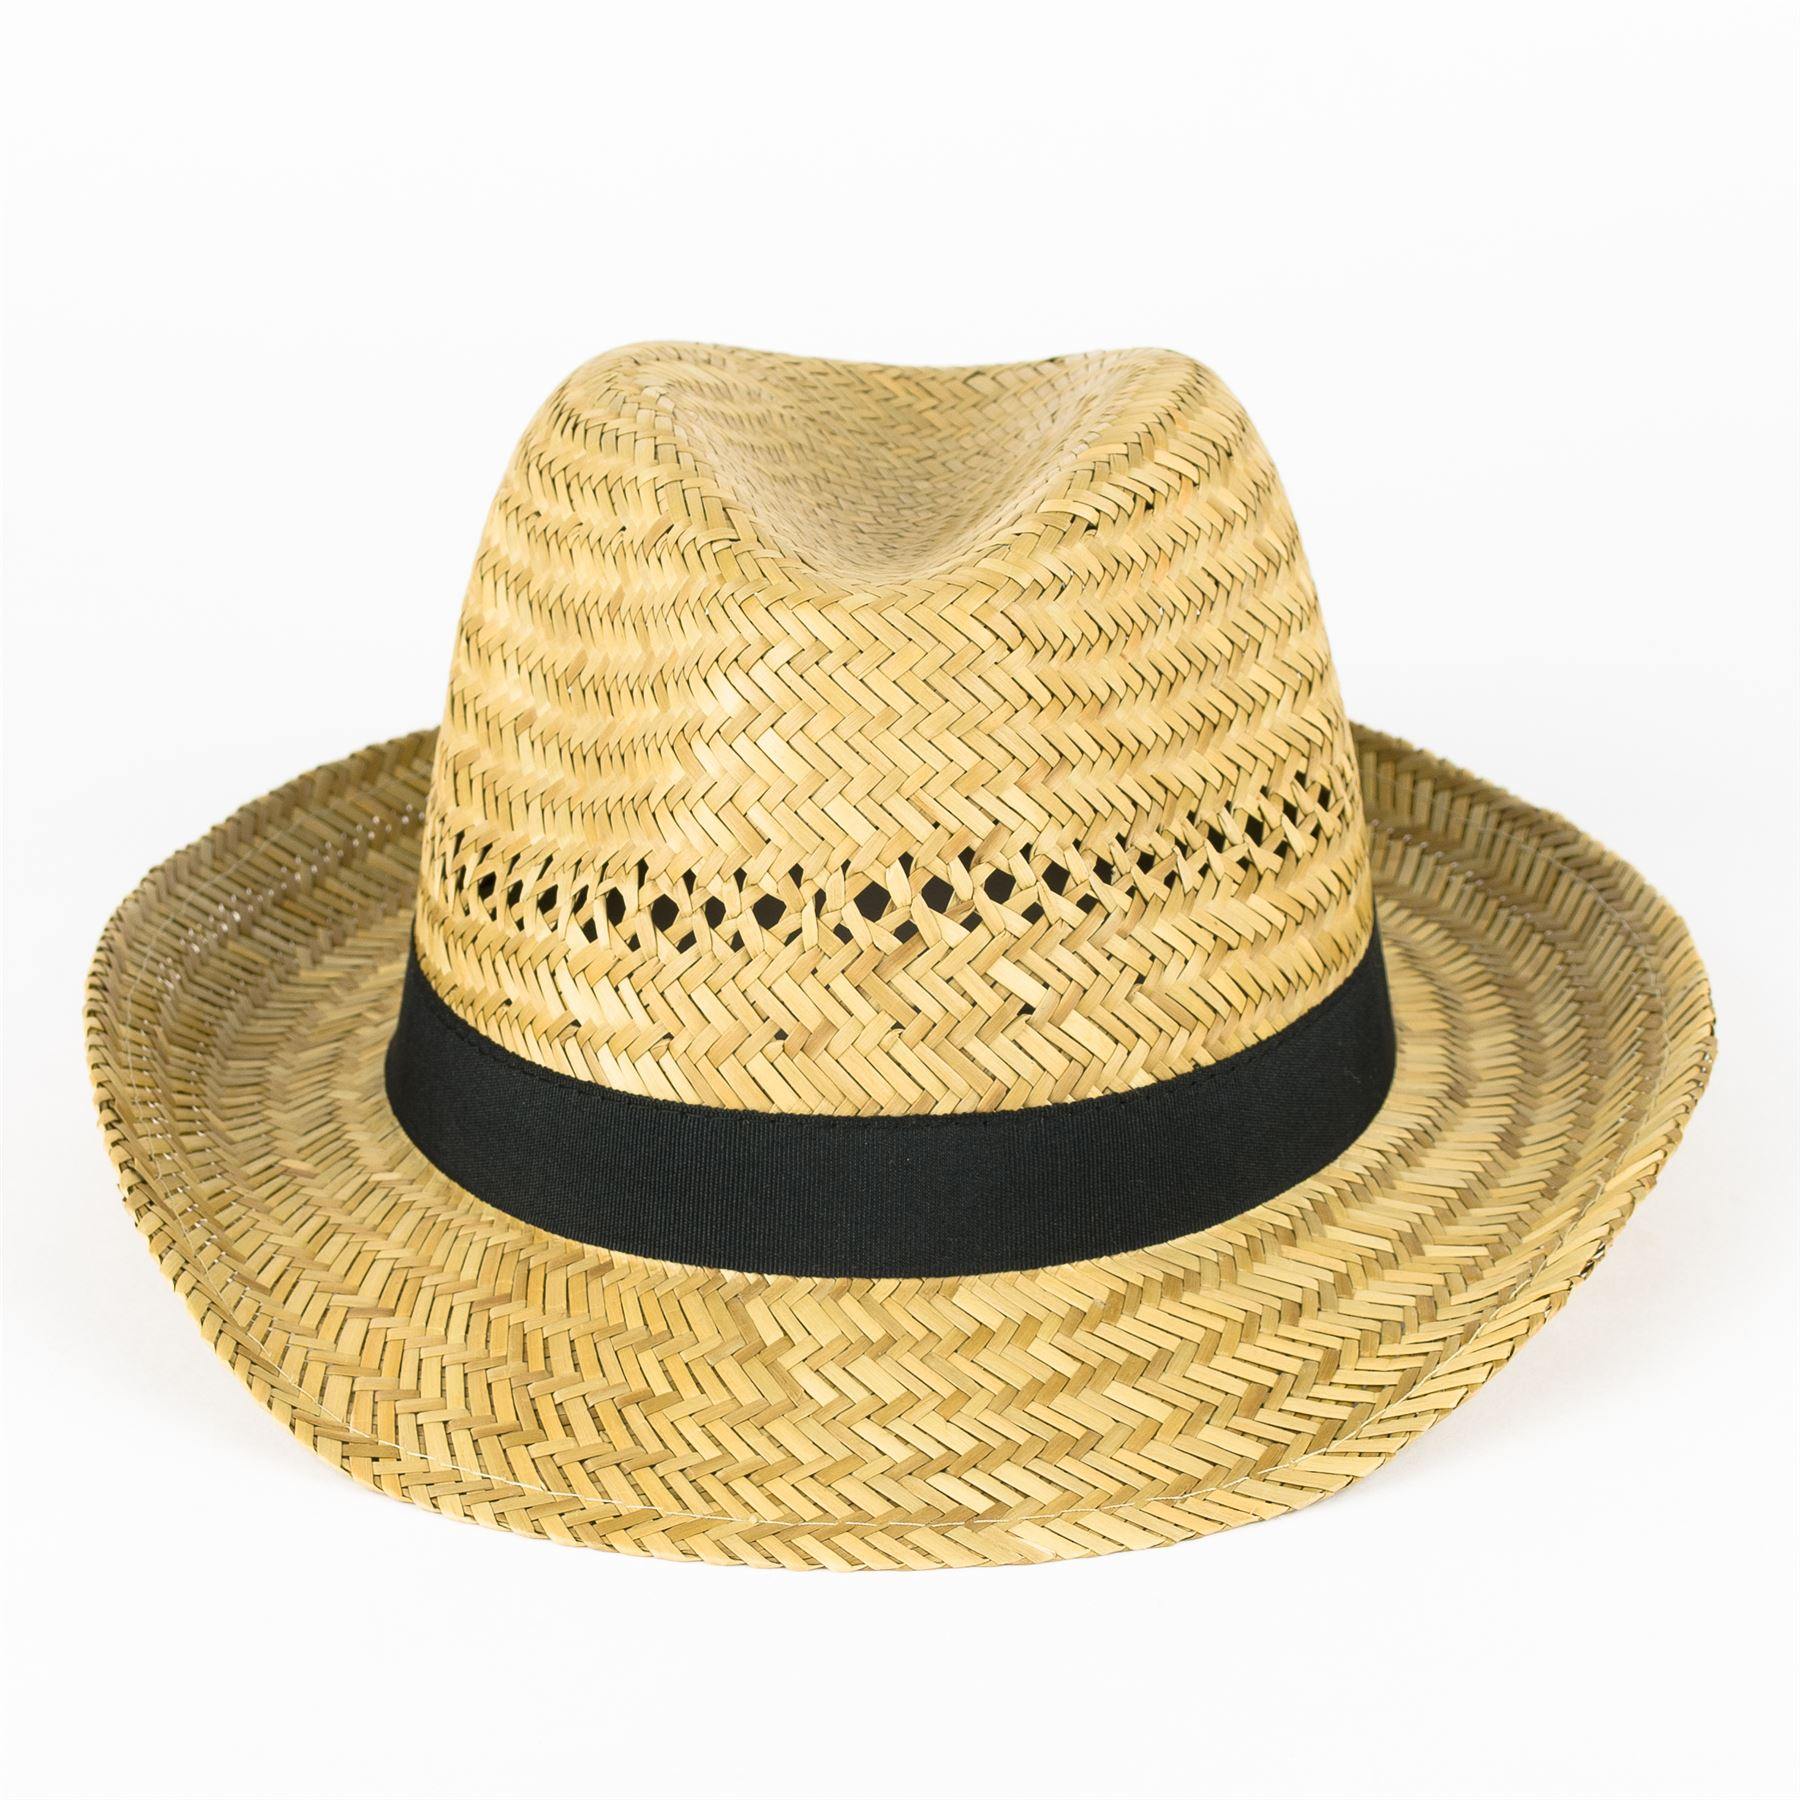 4dbd6532cd69c Straw-Fedora-Hat-with-Black-Grosgrain-Band thumbnail 4